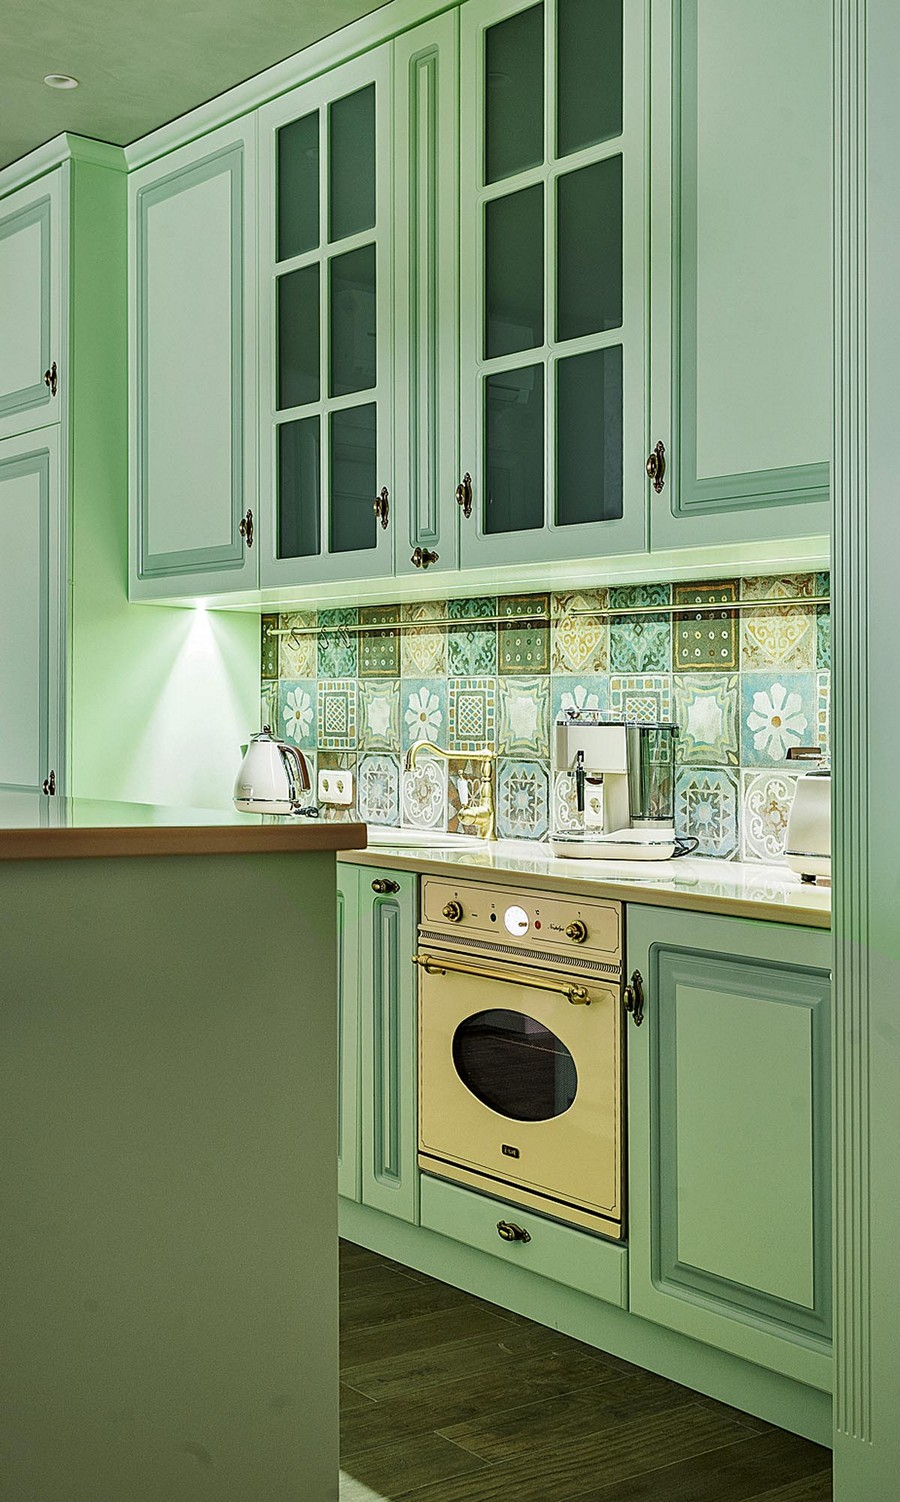 3-pale-mint-green-kitchen-interior-design-in-Mediterranean-style-island-soild-wood-cabinets-beige-worktop-cooker-hood-glass-cabinets-stove-brass-faucet-handles-rails-cheerful-square-tiles-backsplash-kettle